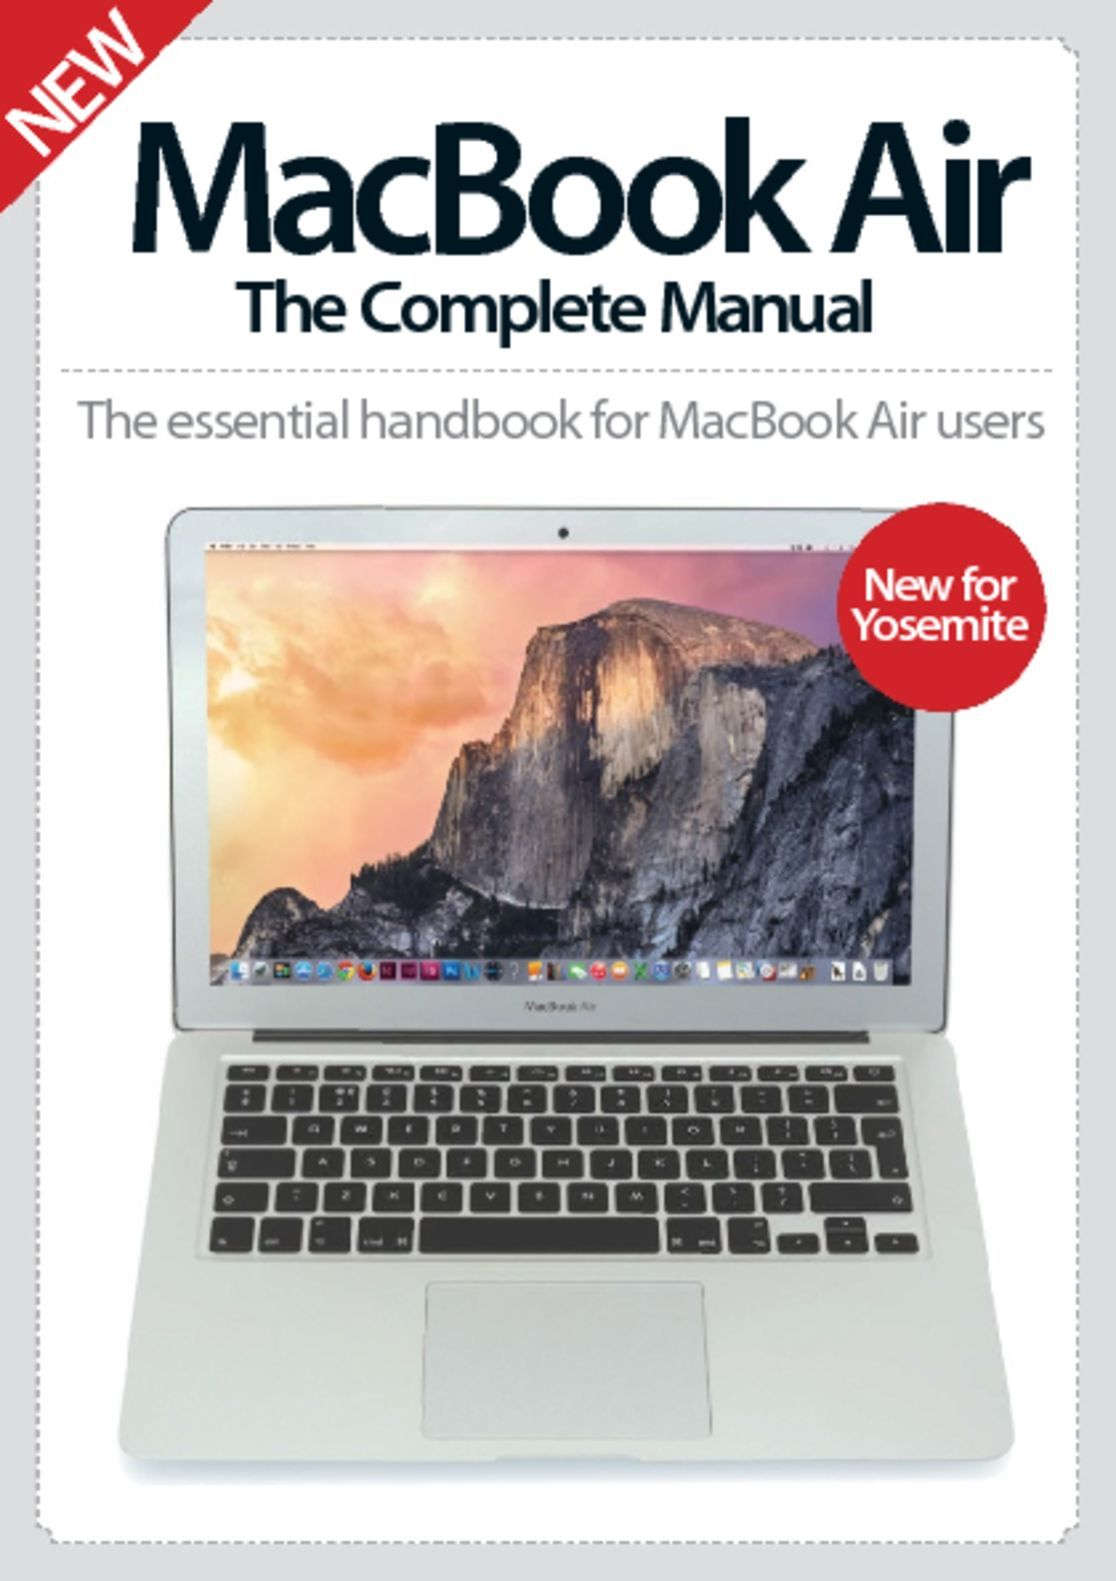 macbook air the complete manual magazine digital discountmags com rh discountmags com MacBook Air Case with Screen apple macbook air manual 2014